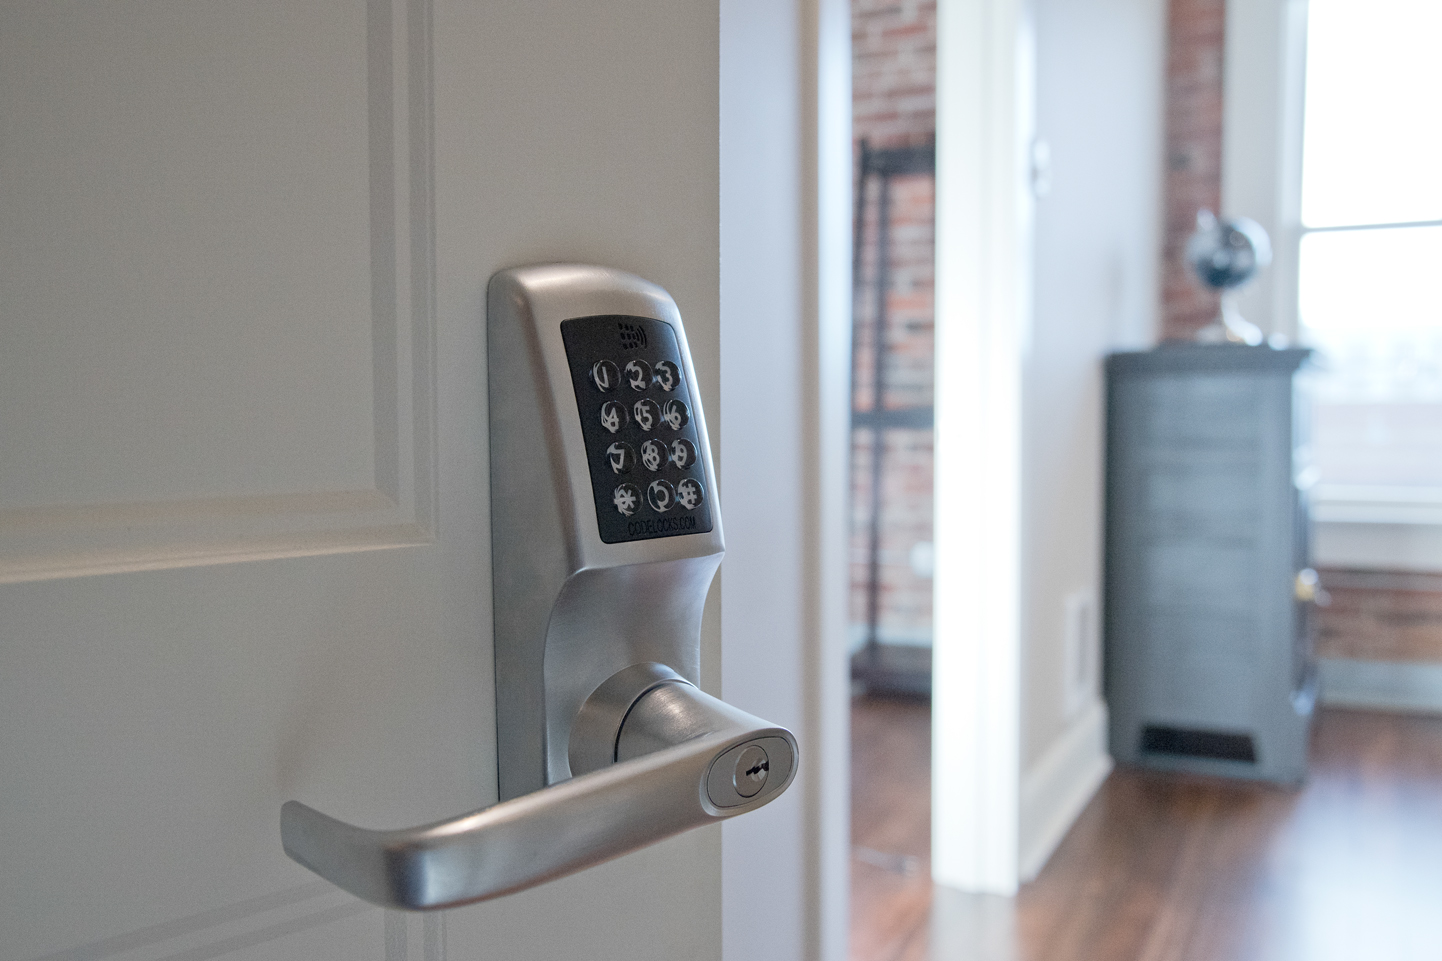 Keyless/Cardless Entry